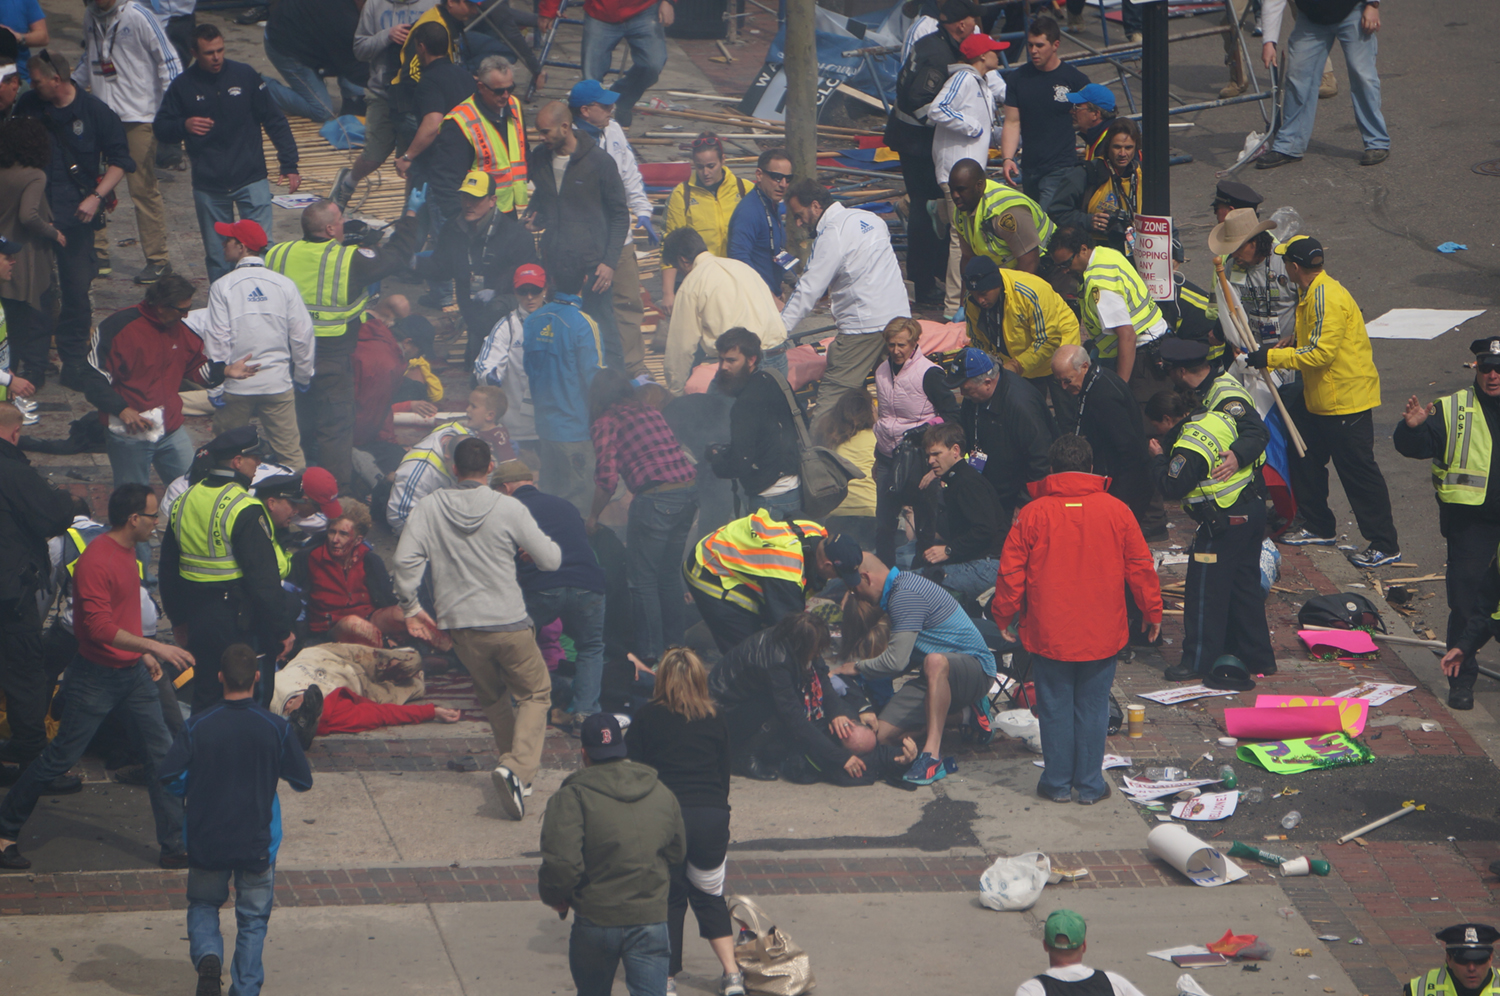 Aftermath of the Boston Marathon bombing, April 15, 2013.